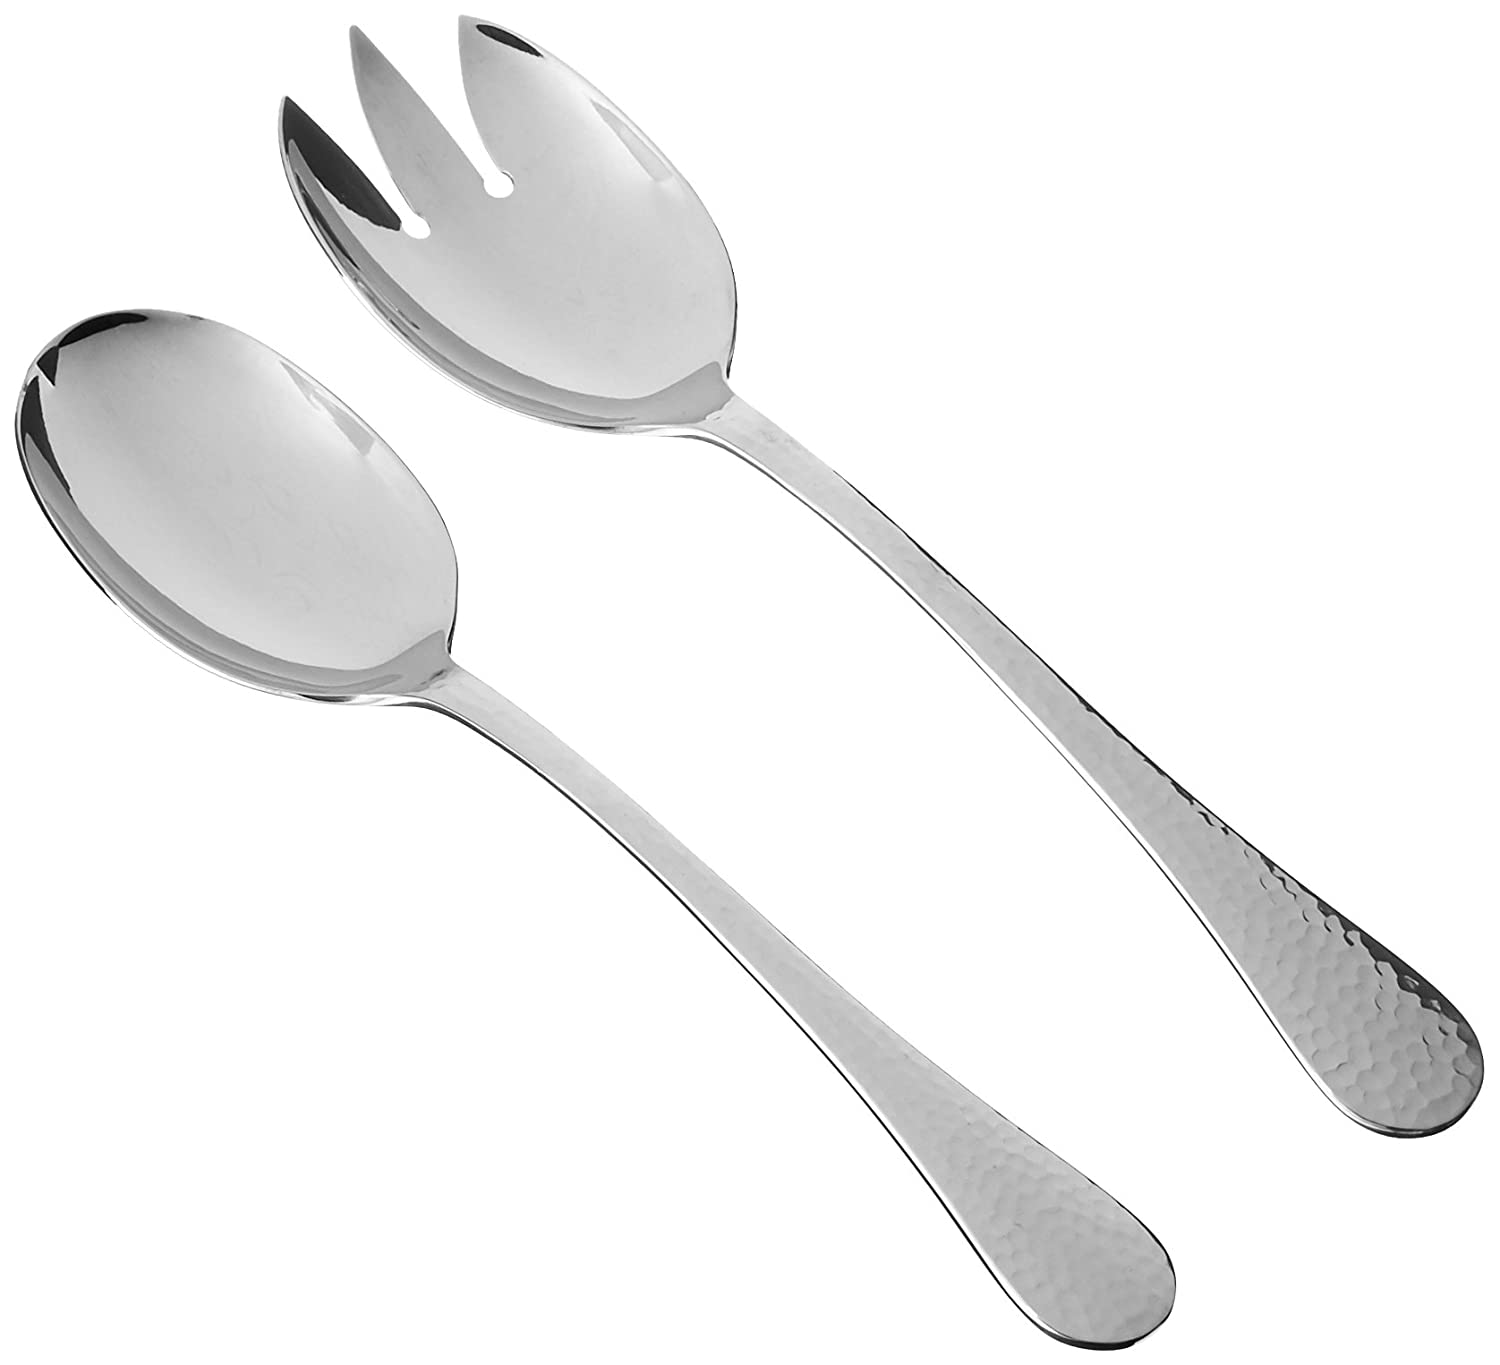 Ginkgo 36078-4 10-1/2-Inch Hammered Salad Server Set, 2-Piece